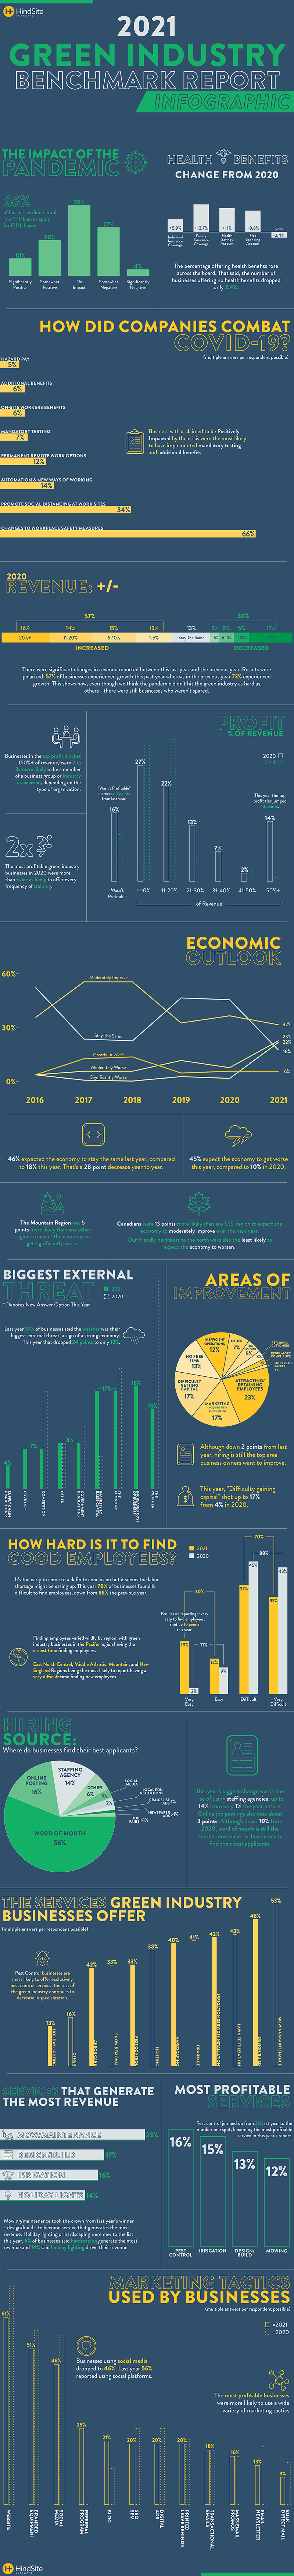 2021 Green Industry Benchmark Report infographic 3